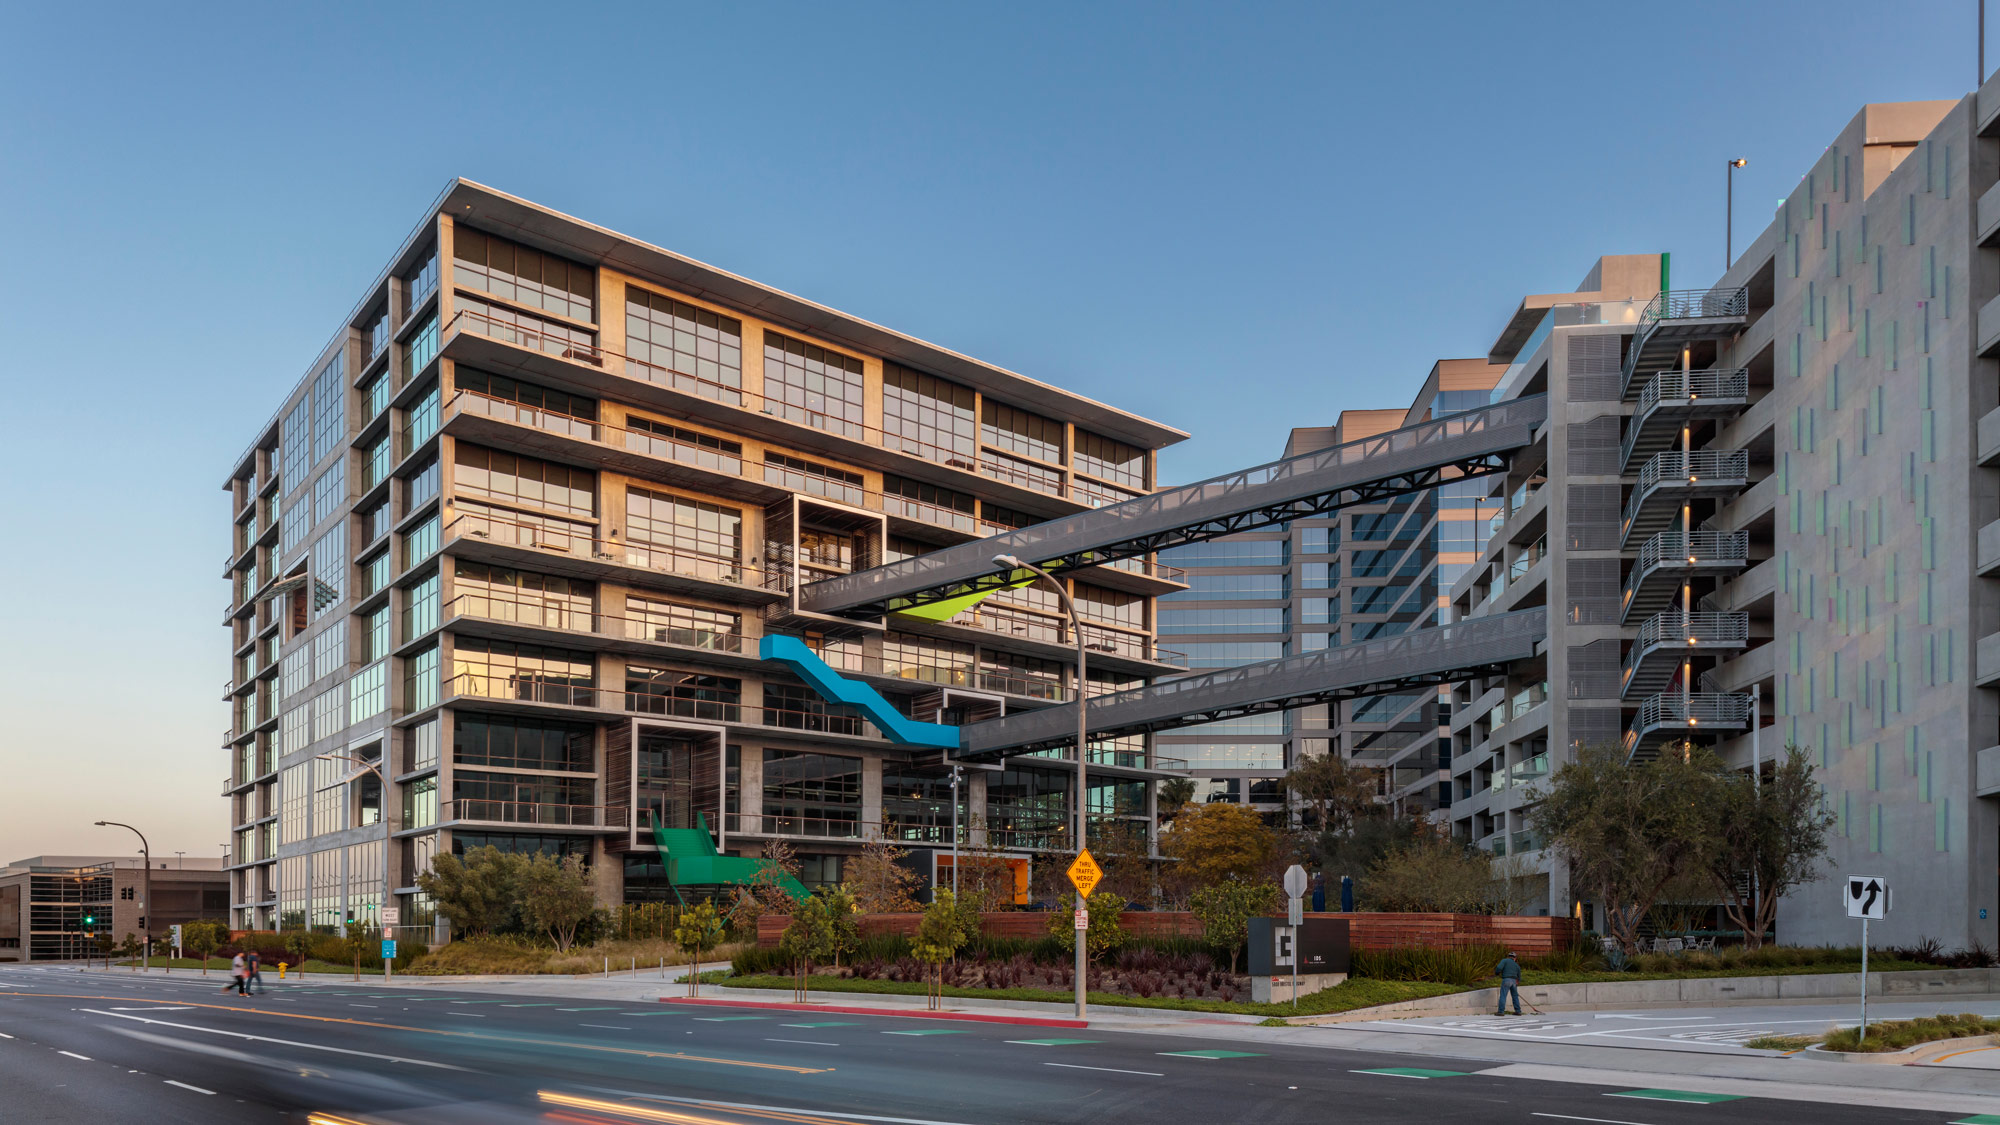 An exterior photo of the Culver City Creative (C3) office building in Culver City, California, showing exterior walkways and entry points.